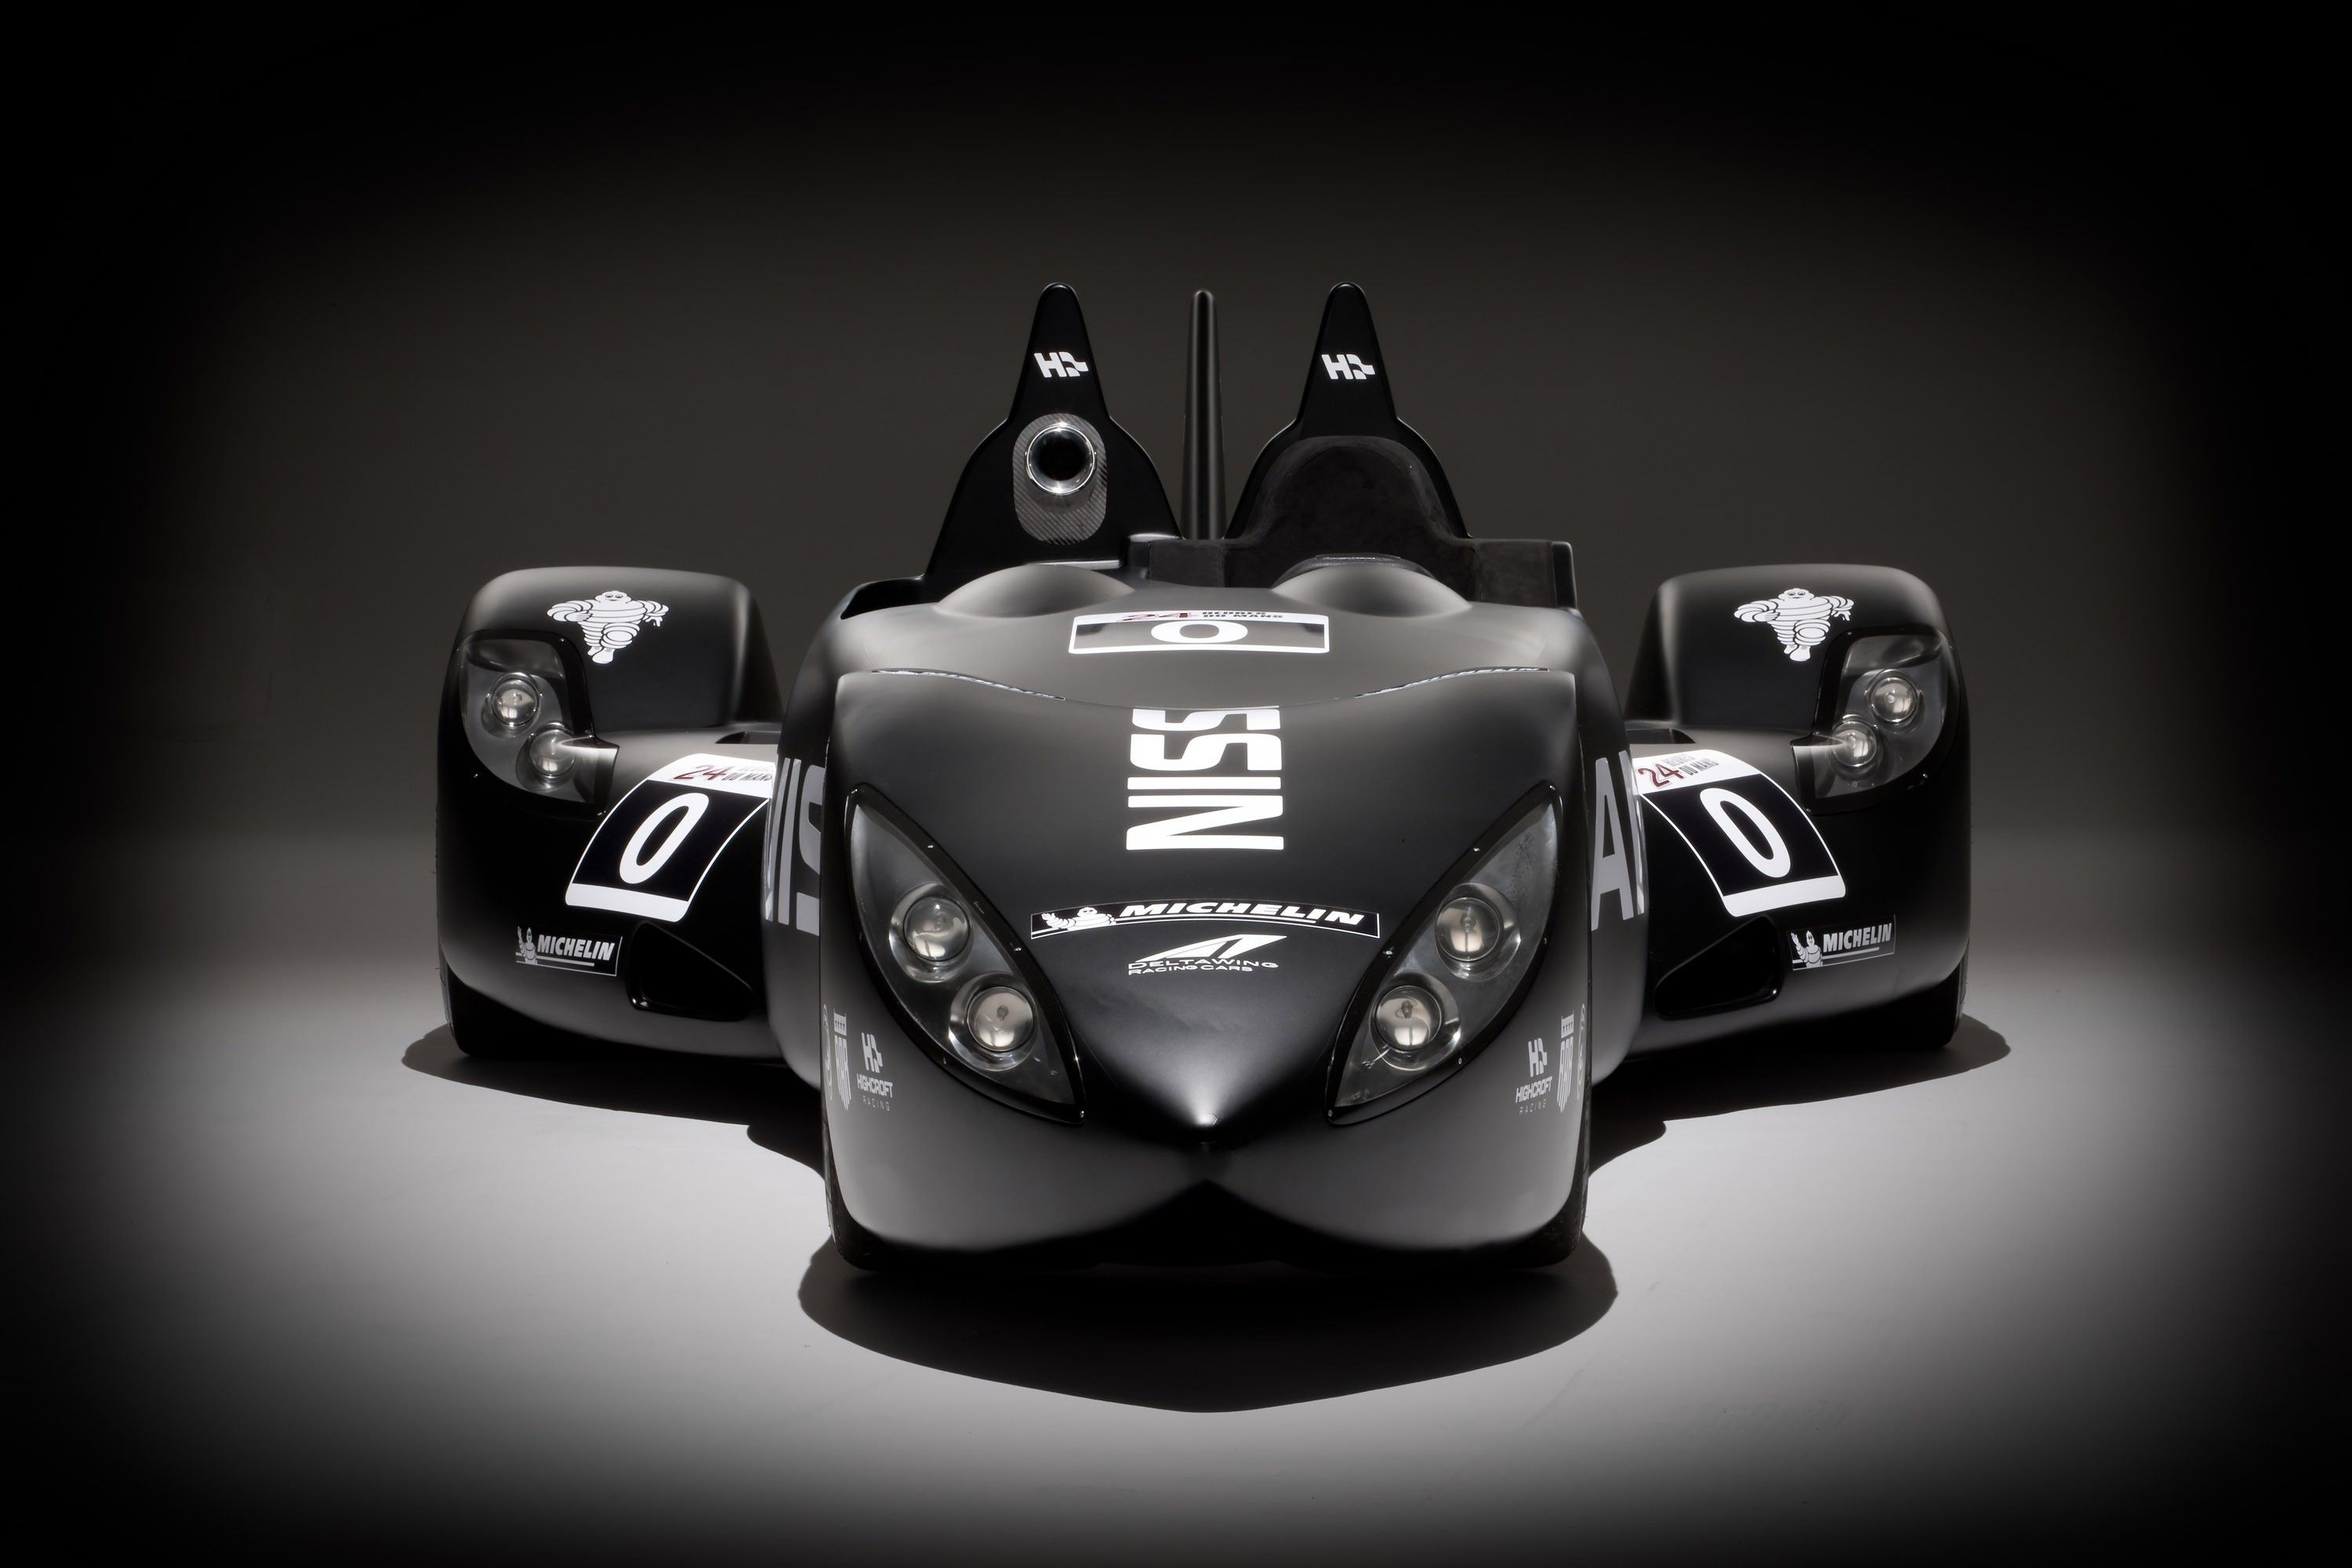 3000x2000 Experimental Nissan Deltawing Racing Cars Wallpaper